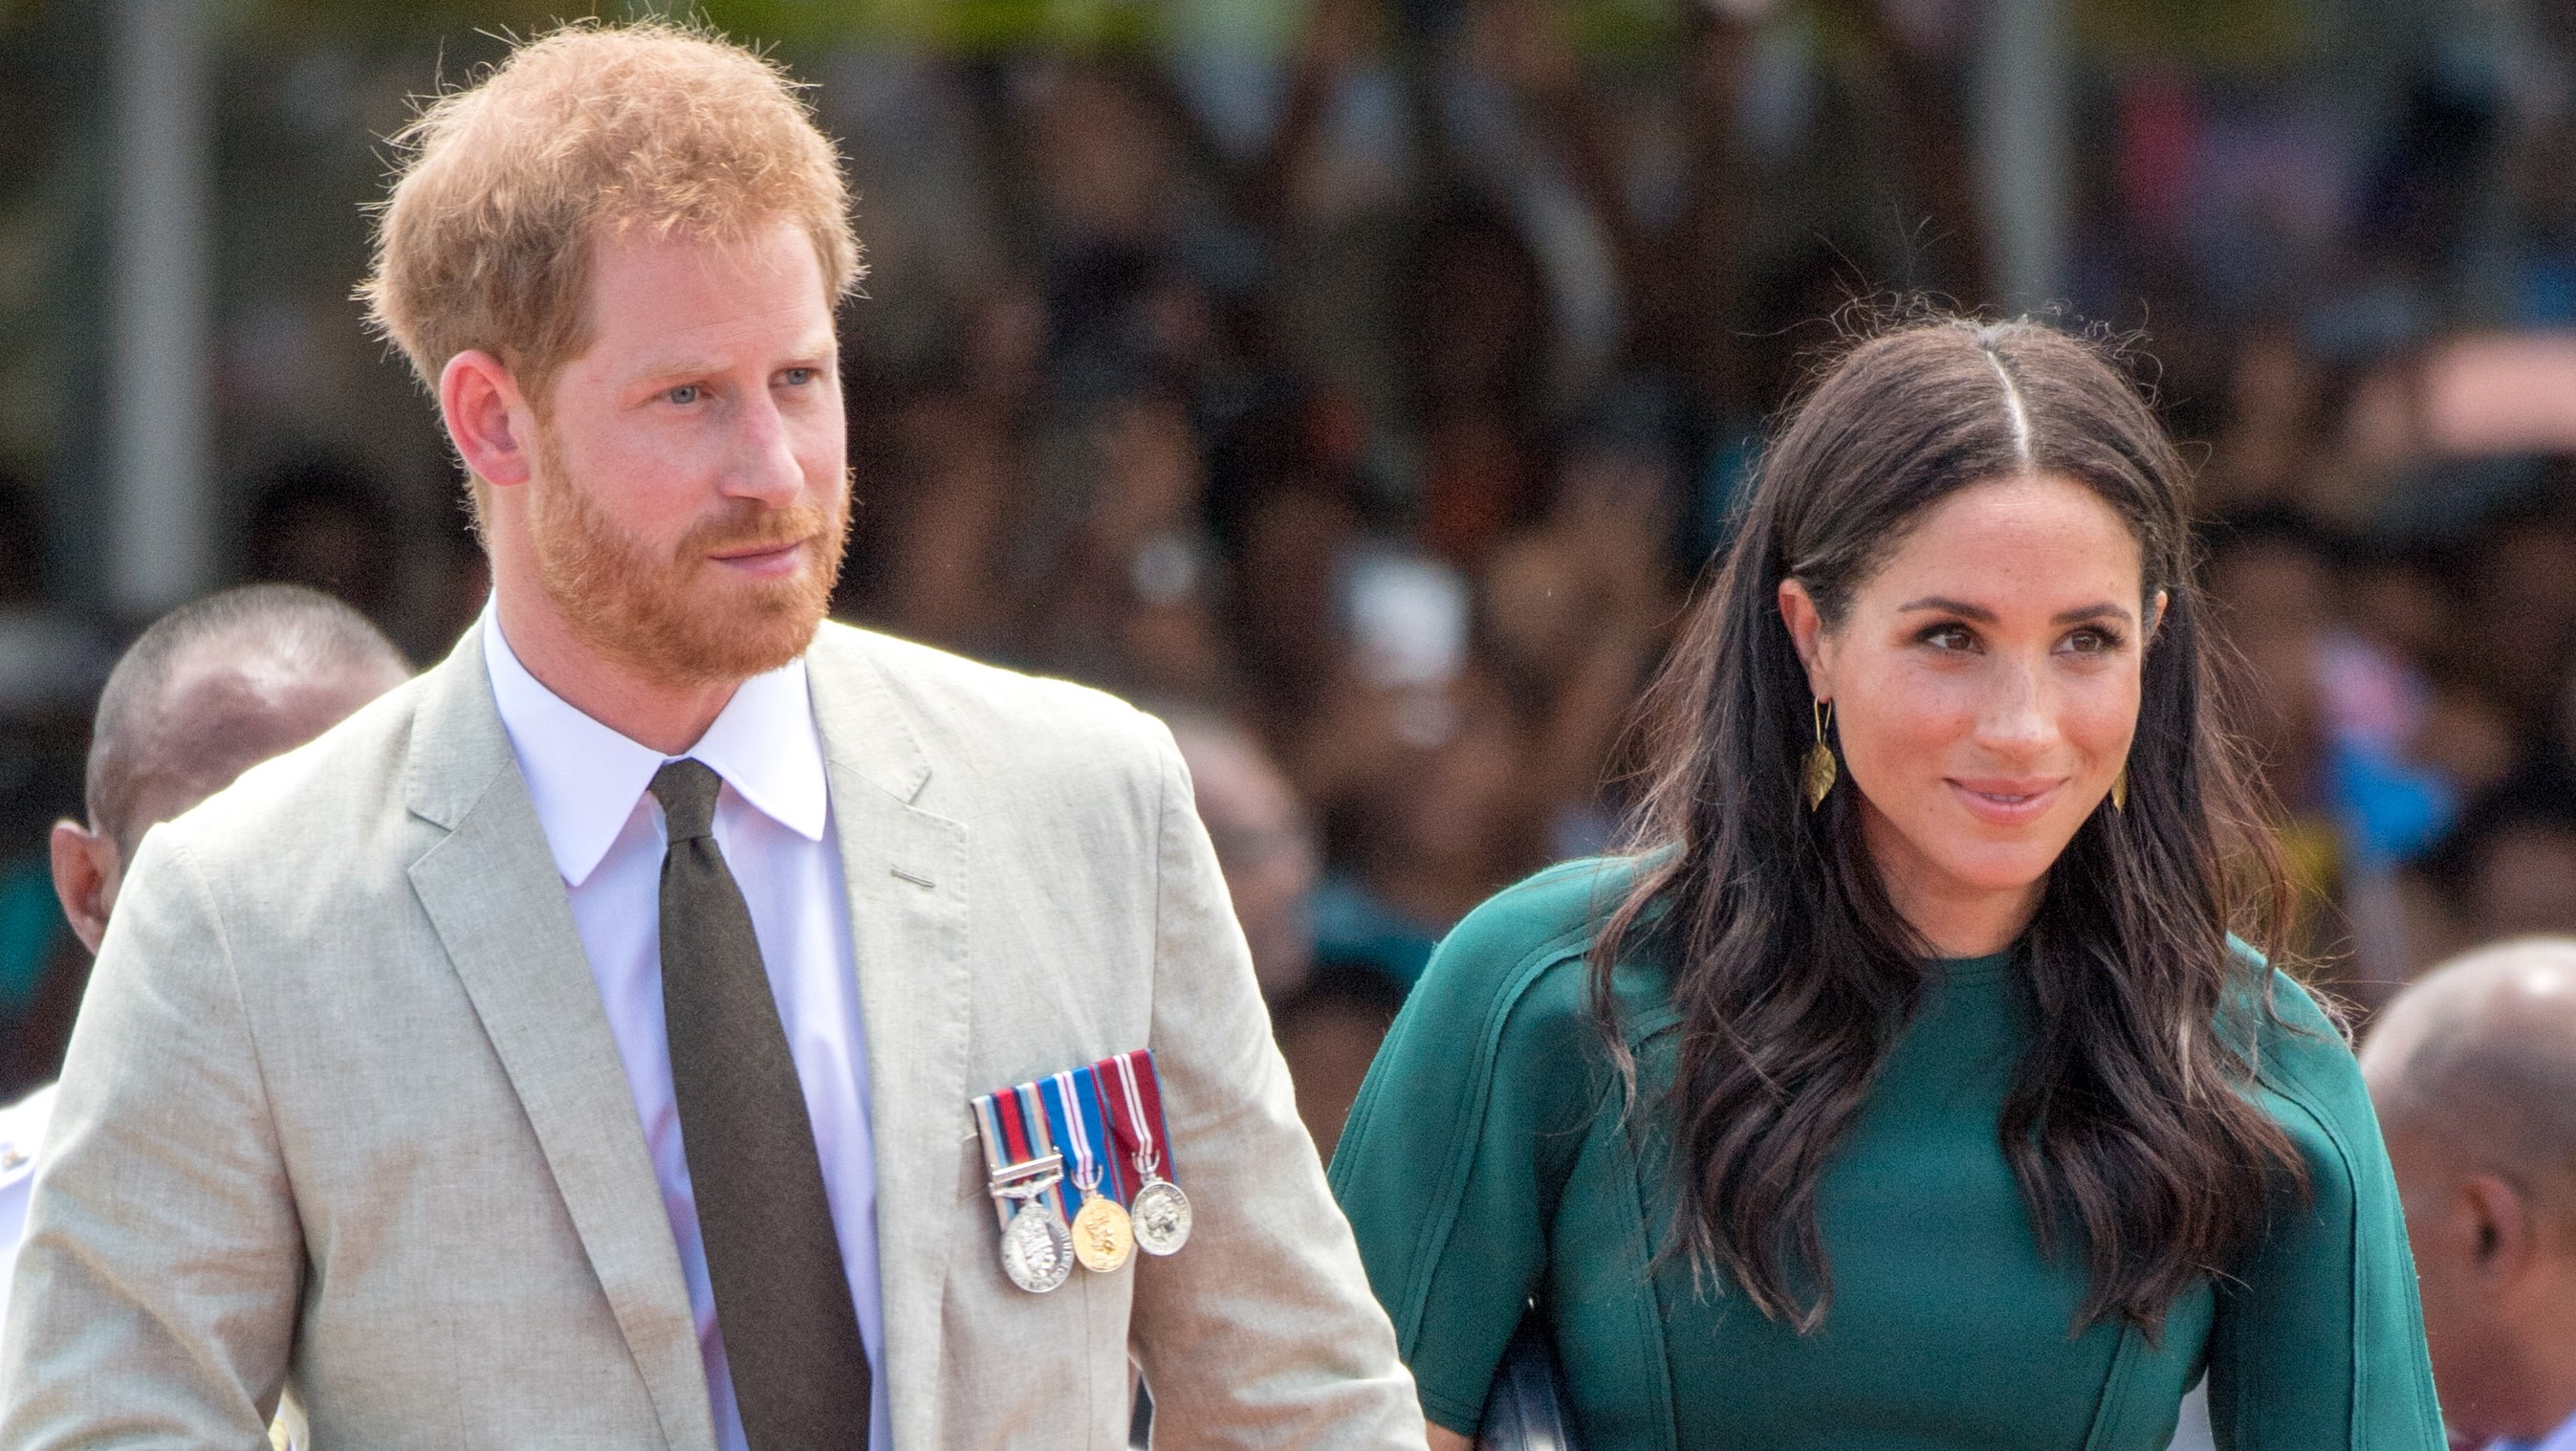 Prince Harry's first wedding anniversary gift to wife Meghan 'revealed'